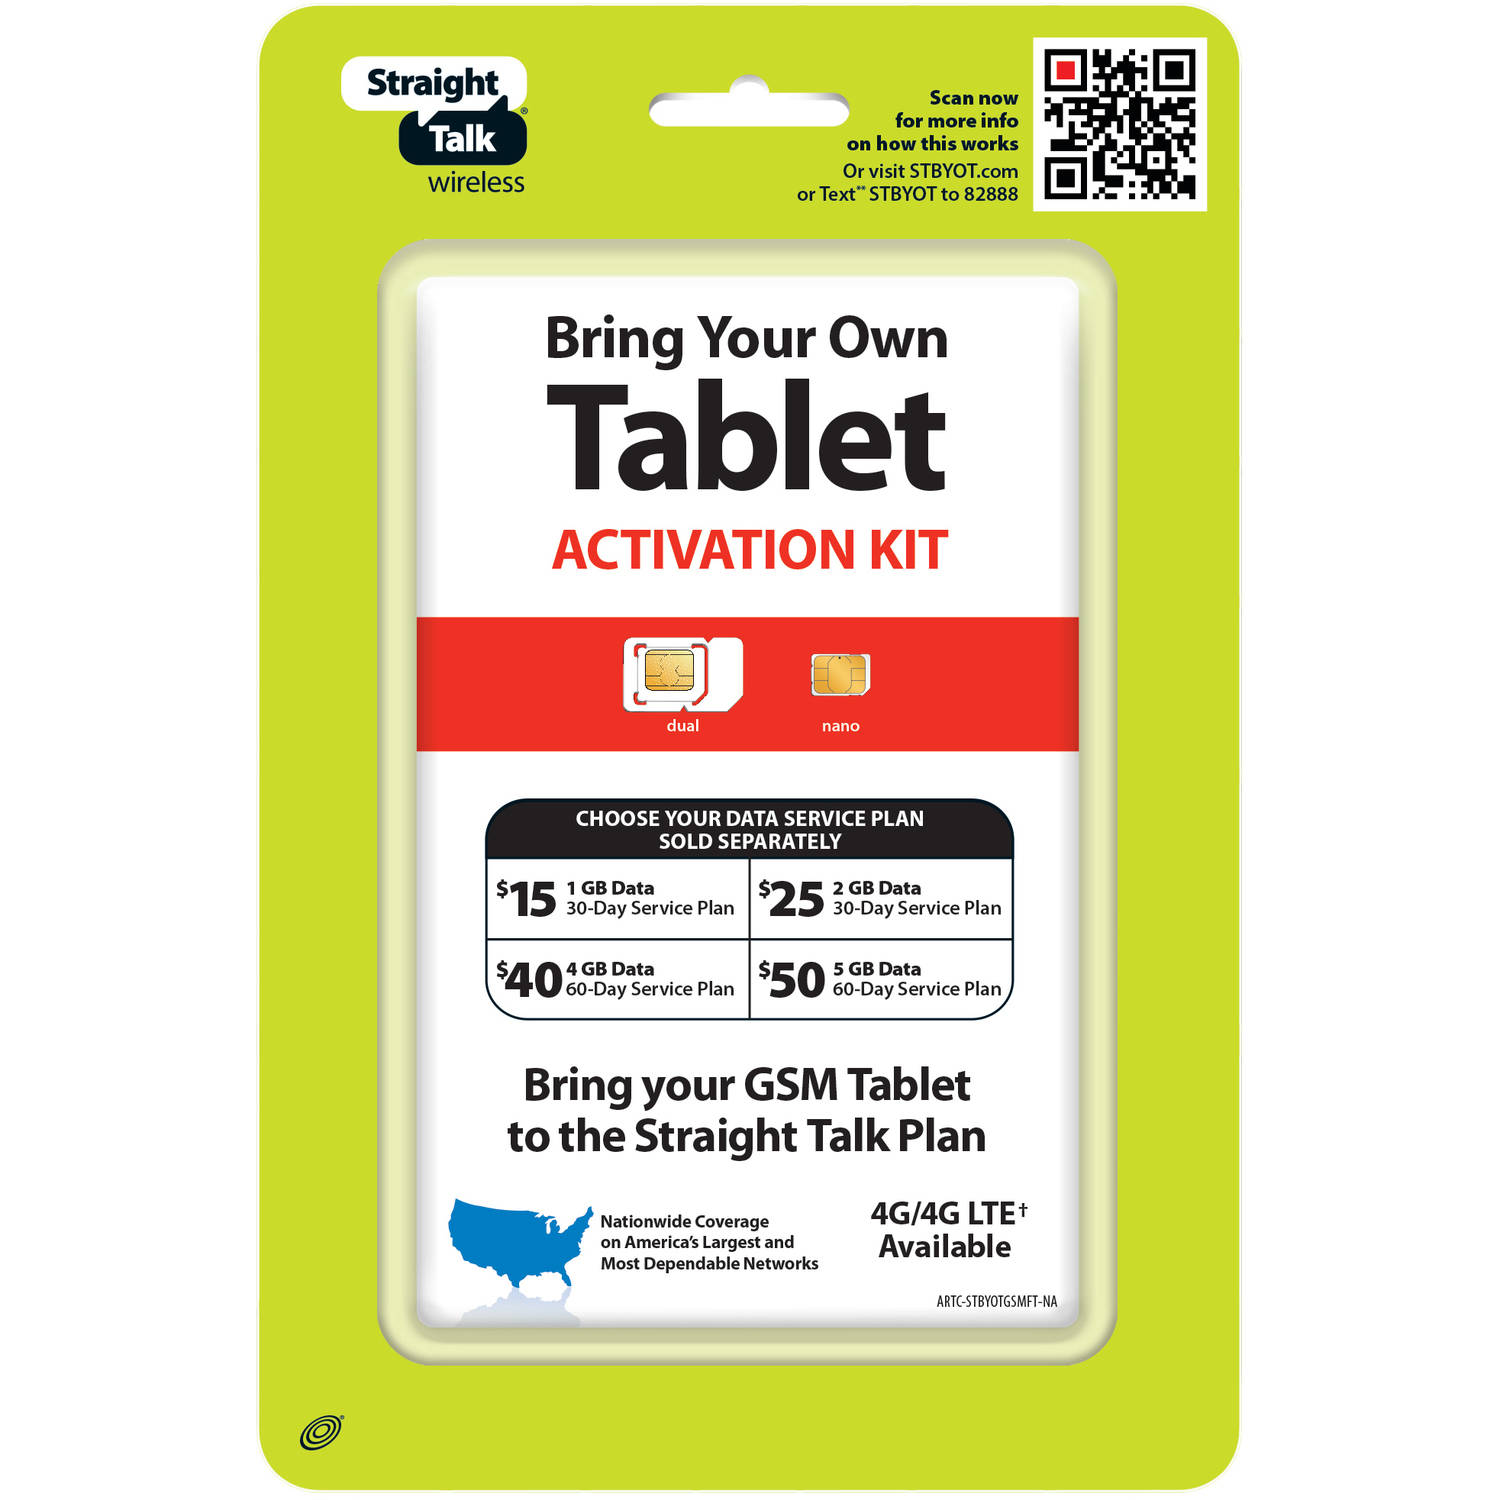 Straight Talk Bring Your Own Tablet Activation Kit